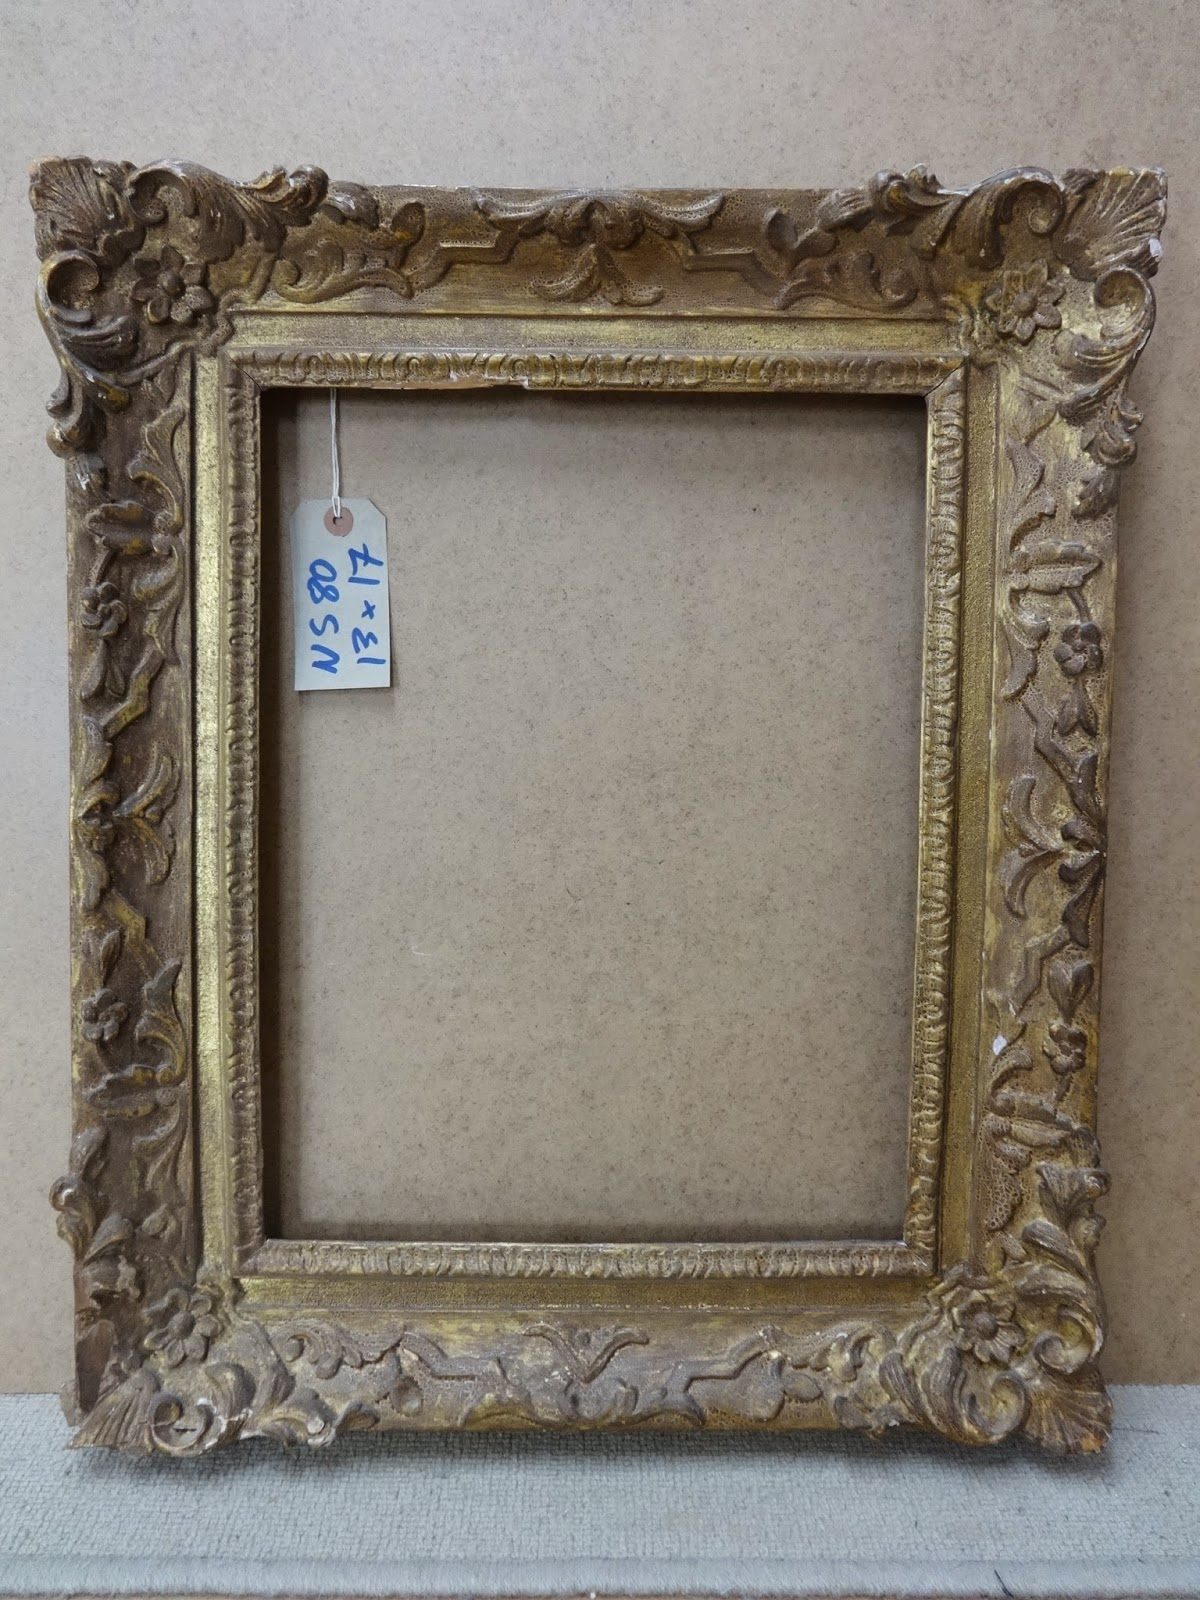 Antique Frame Sale: An 18th Century English Louis XIV Carved Frame